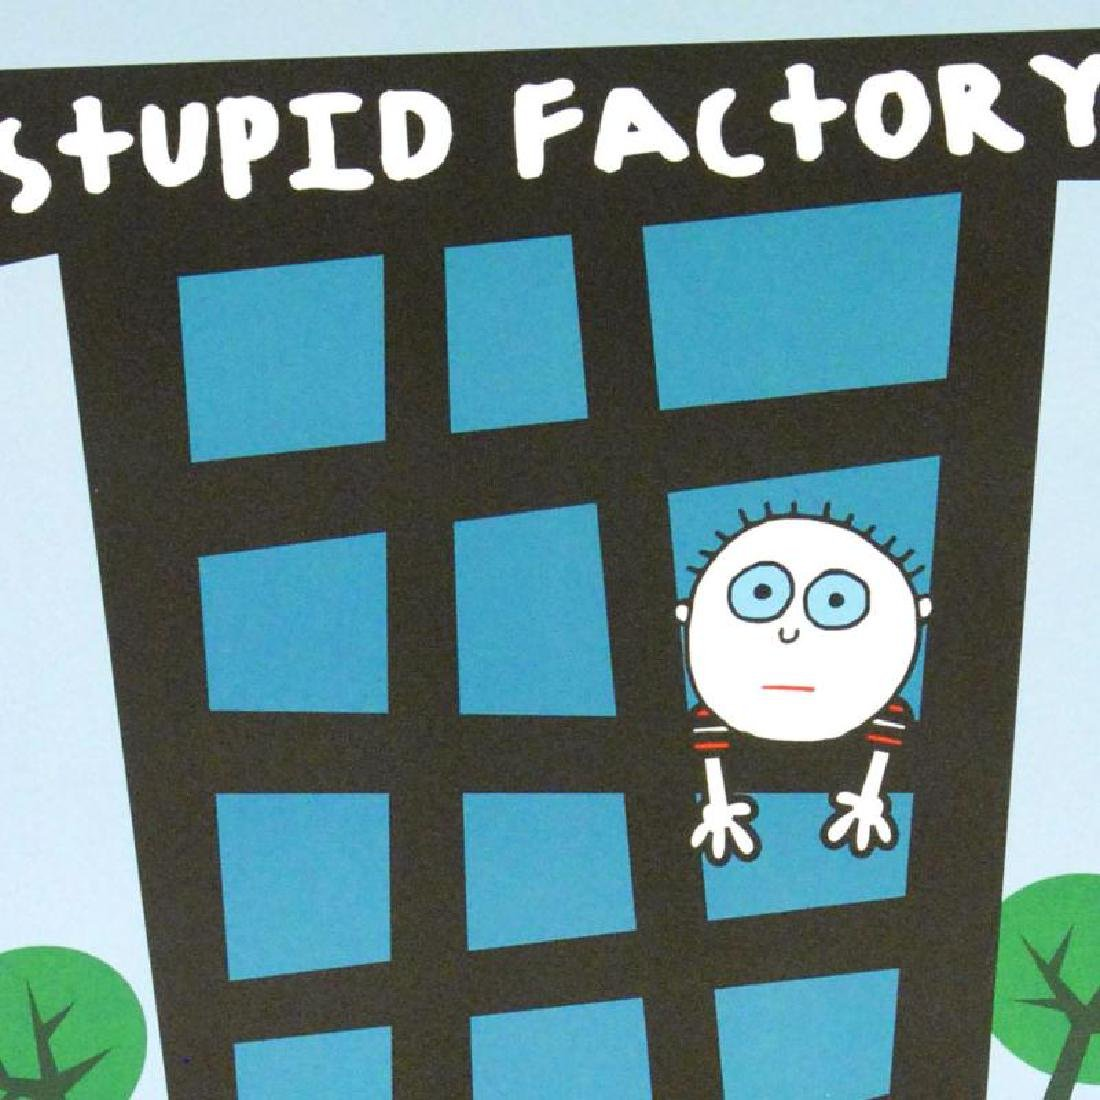 Stupid Factory, Where Boys Are Made! by Goldman, Todd - 2